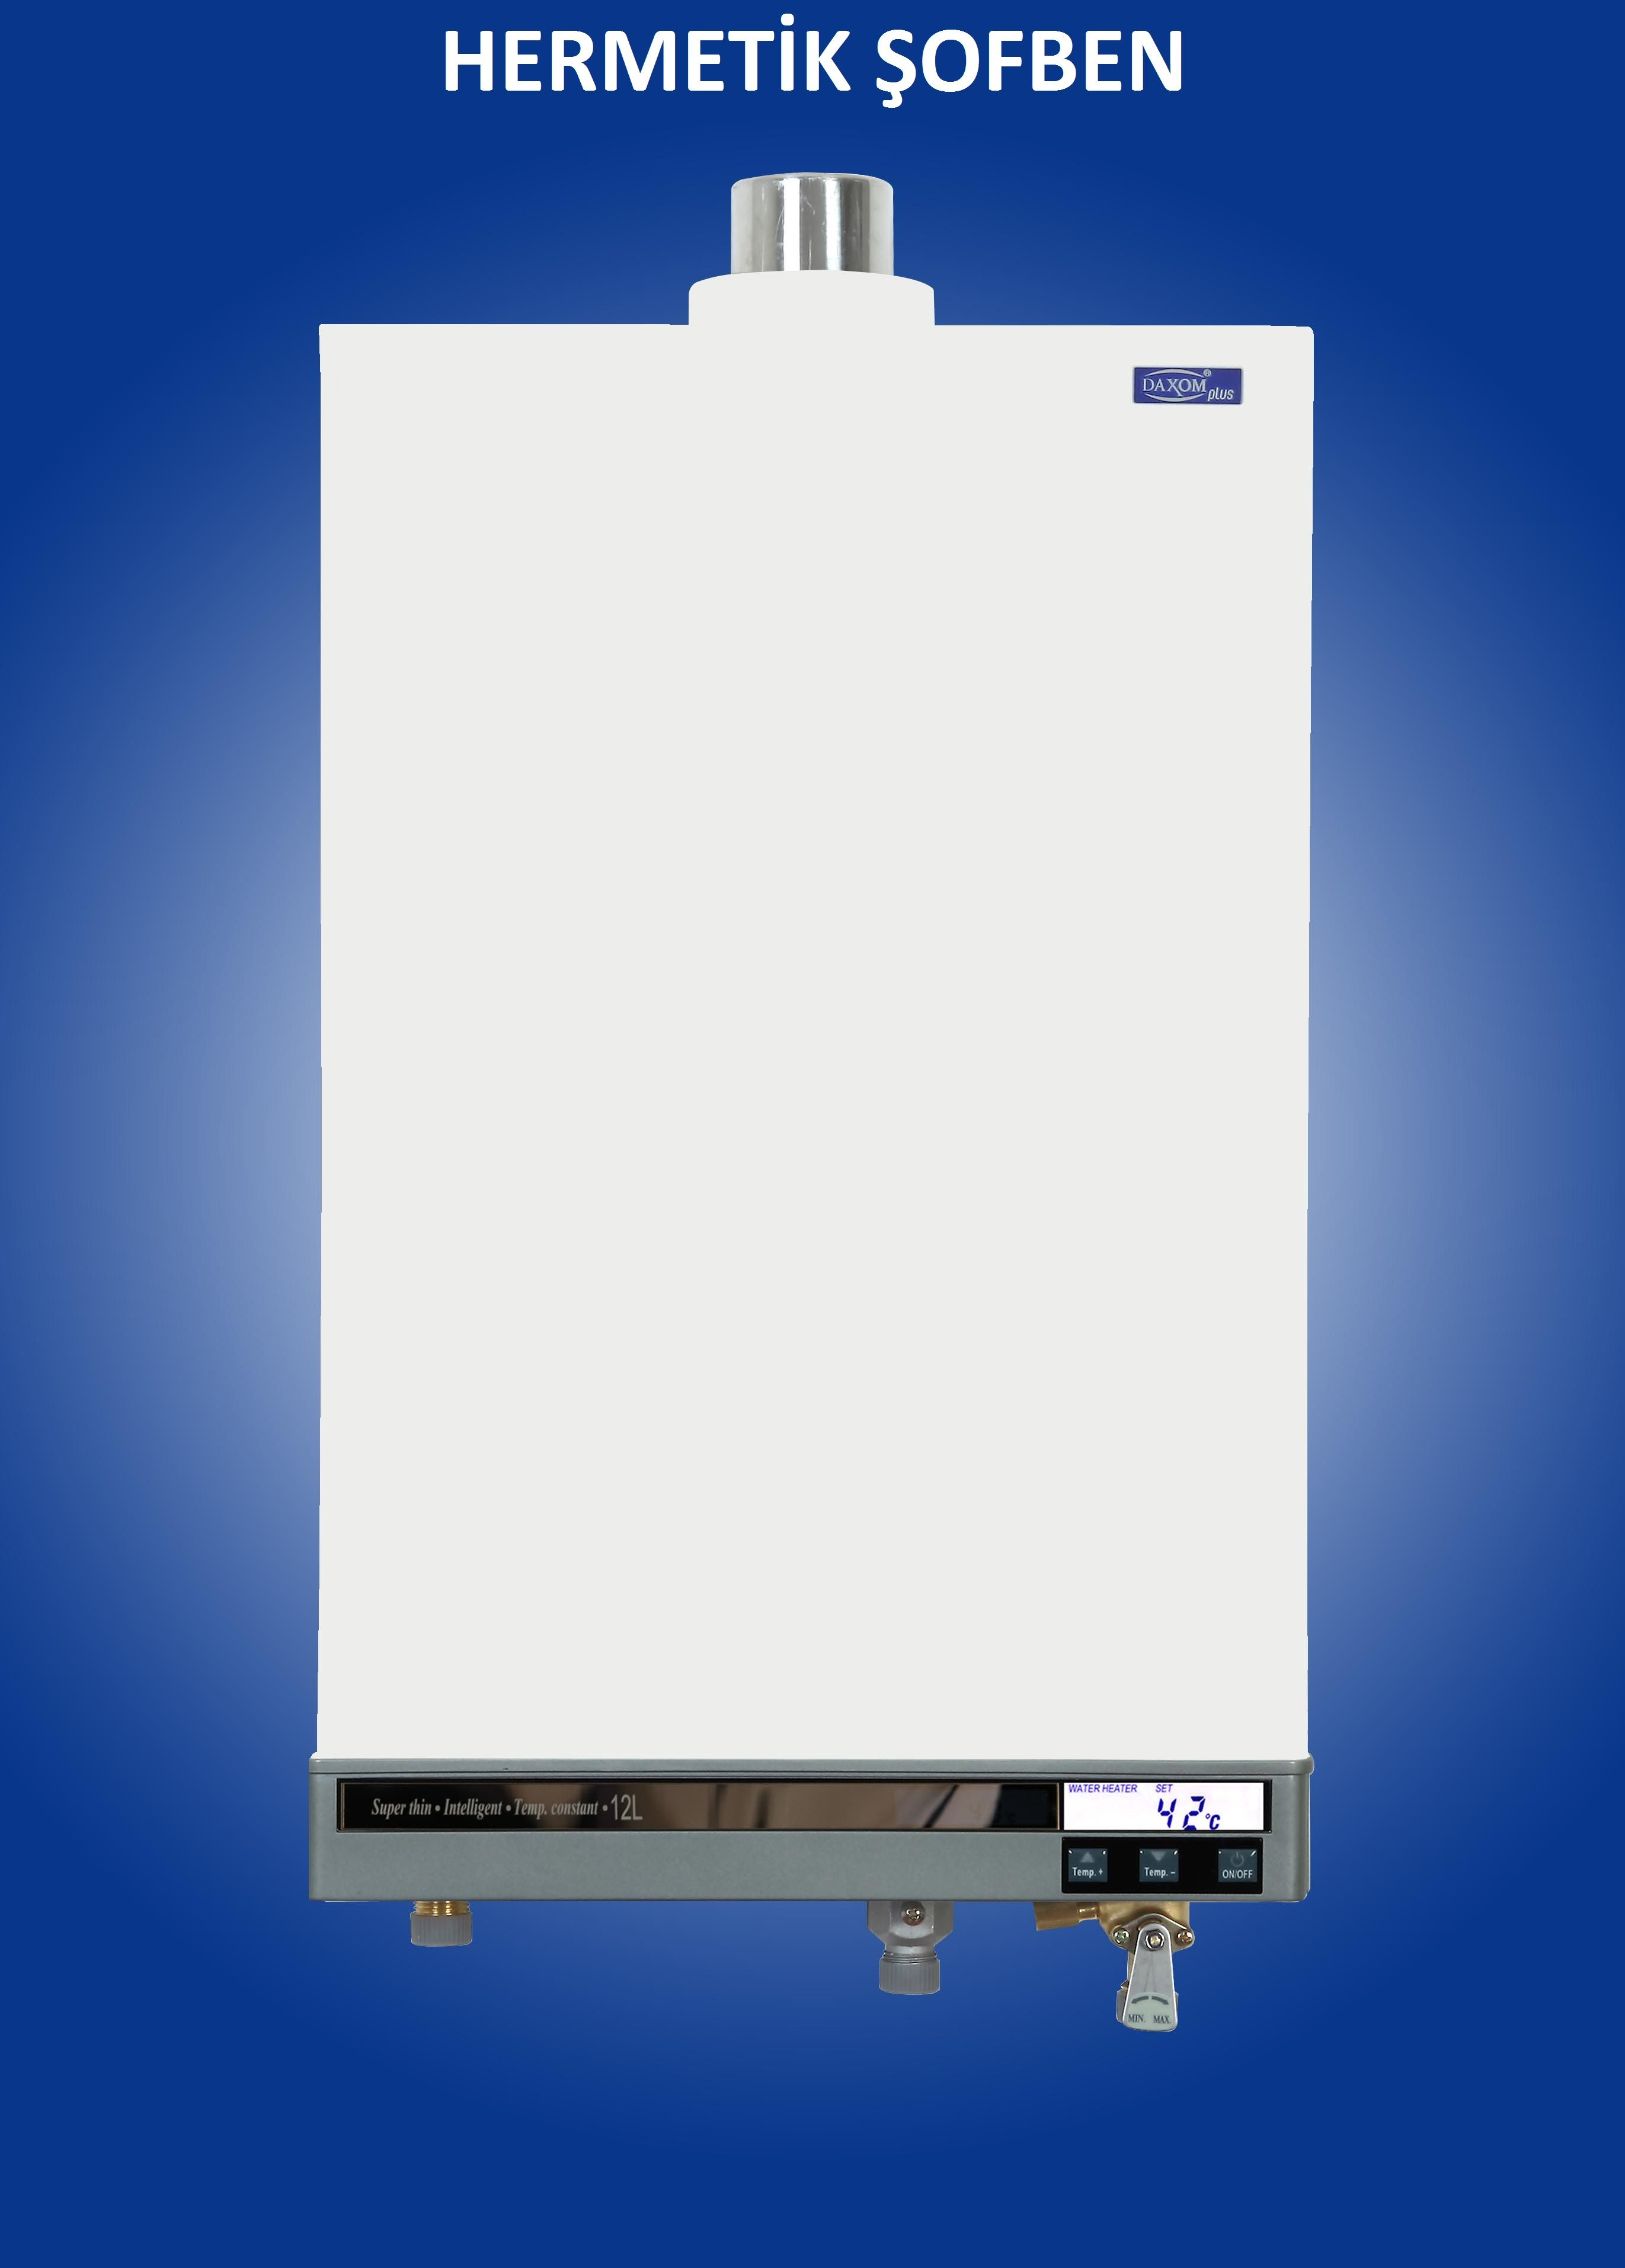 Wall Mounted Condensing Gas Boilers